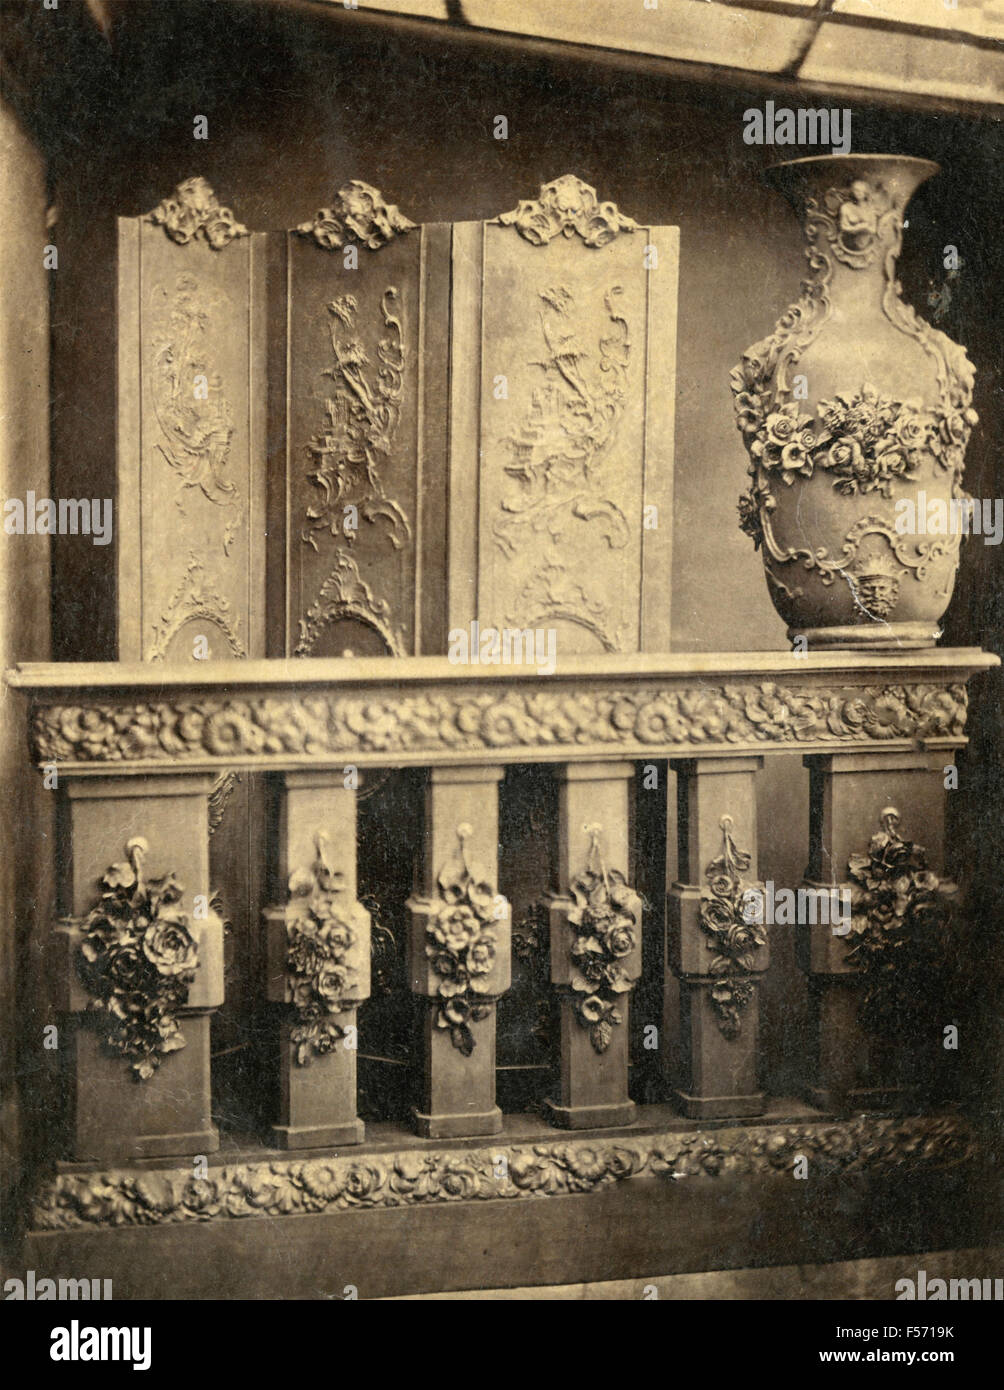 Architectural motifs unidentified - Stock Image